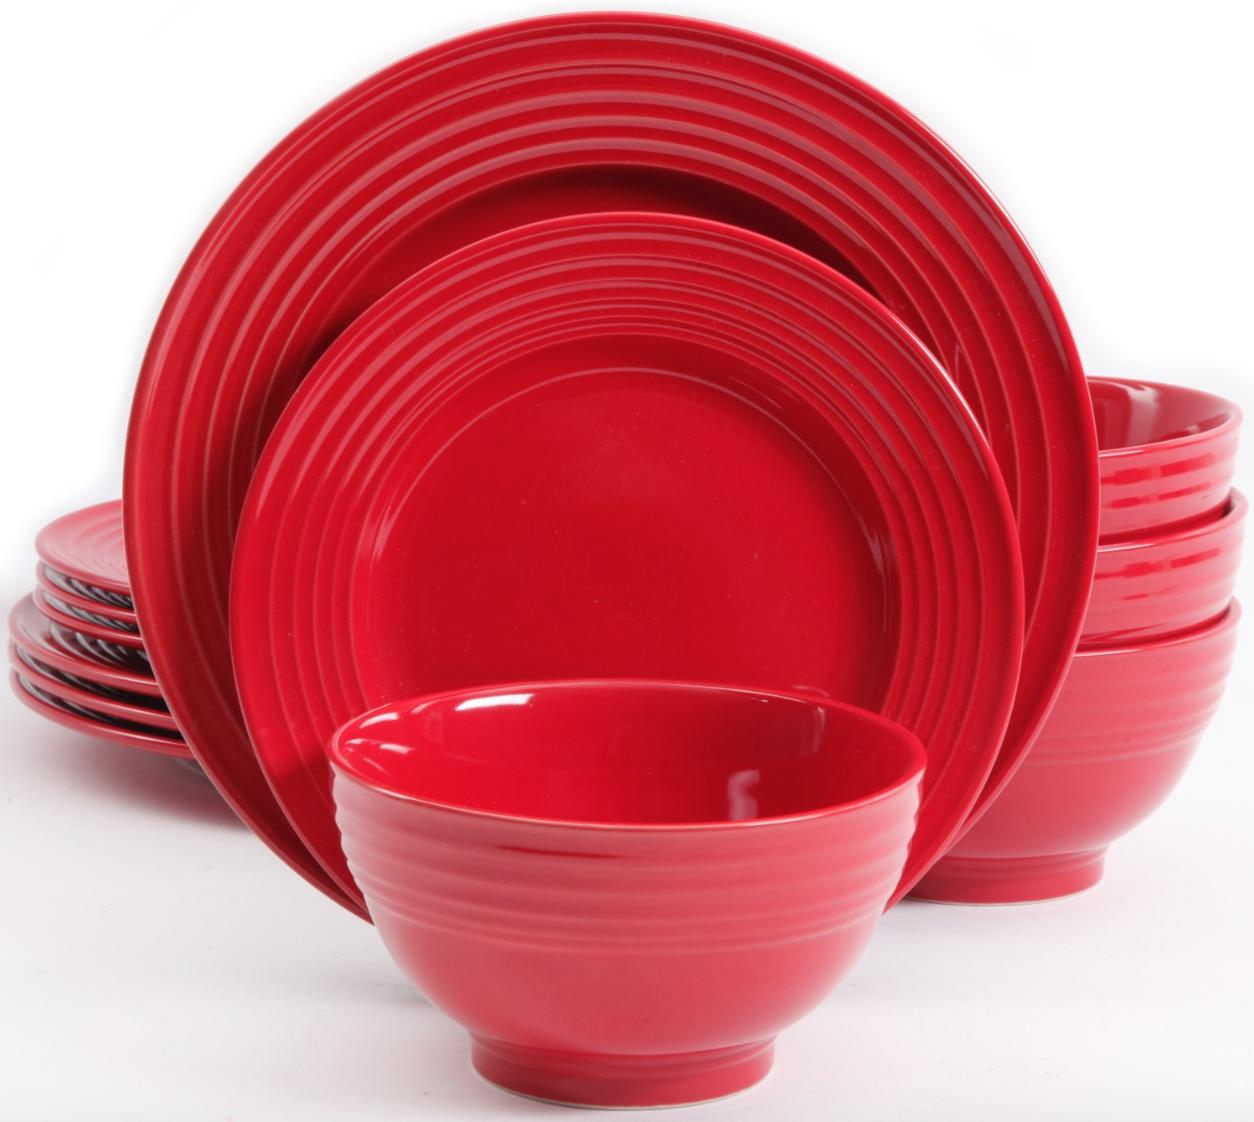 A set of red plates and bowls.